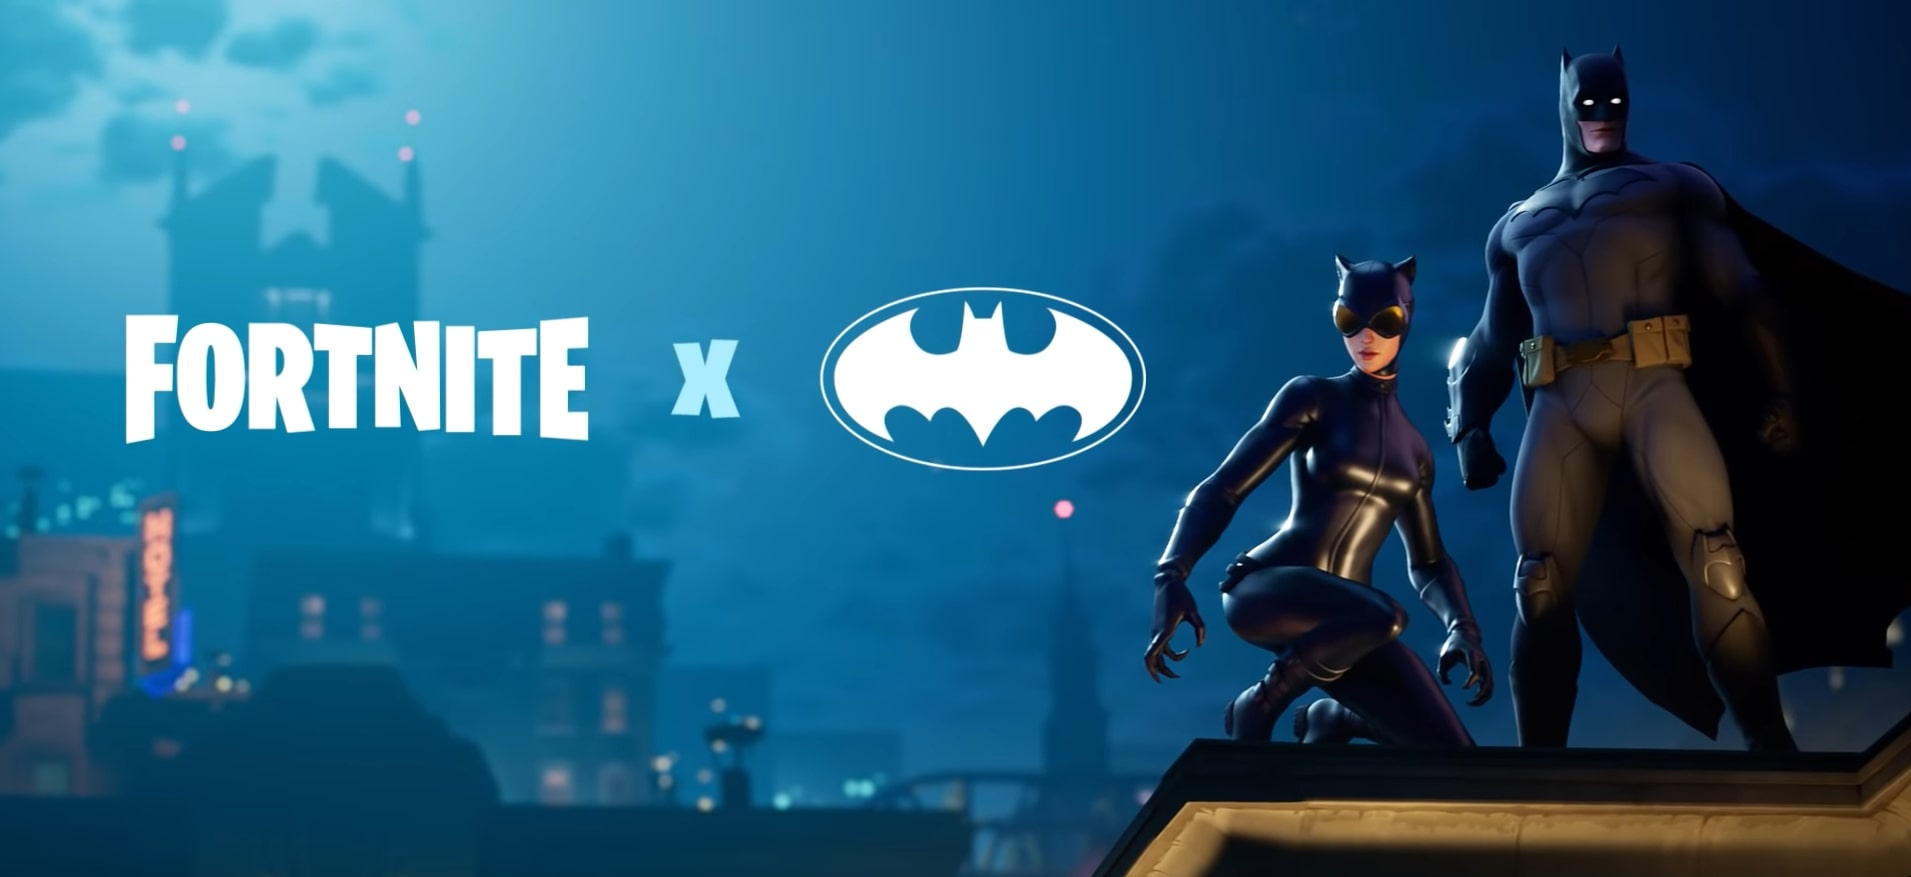 batman and cat woman is coming to fortnite as part of fortnite's new dc crossover